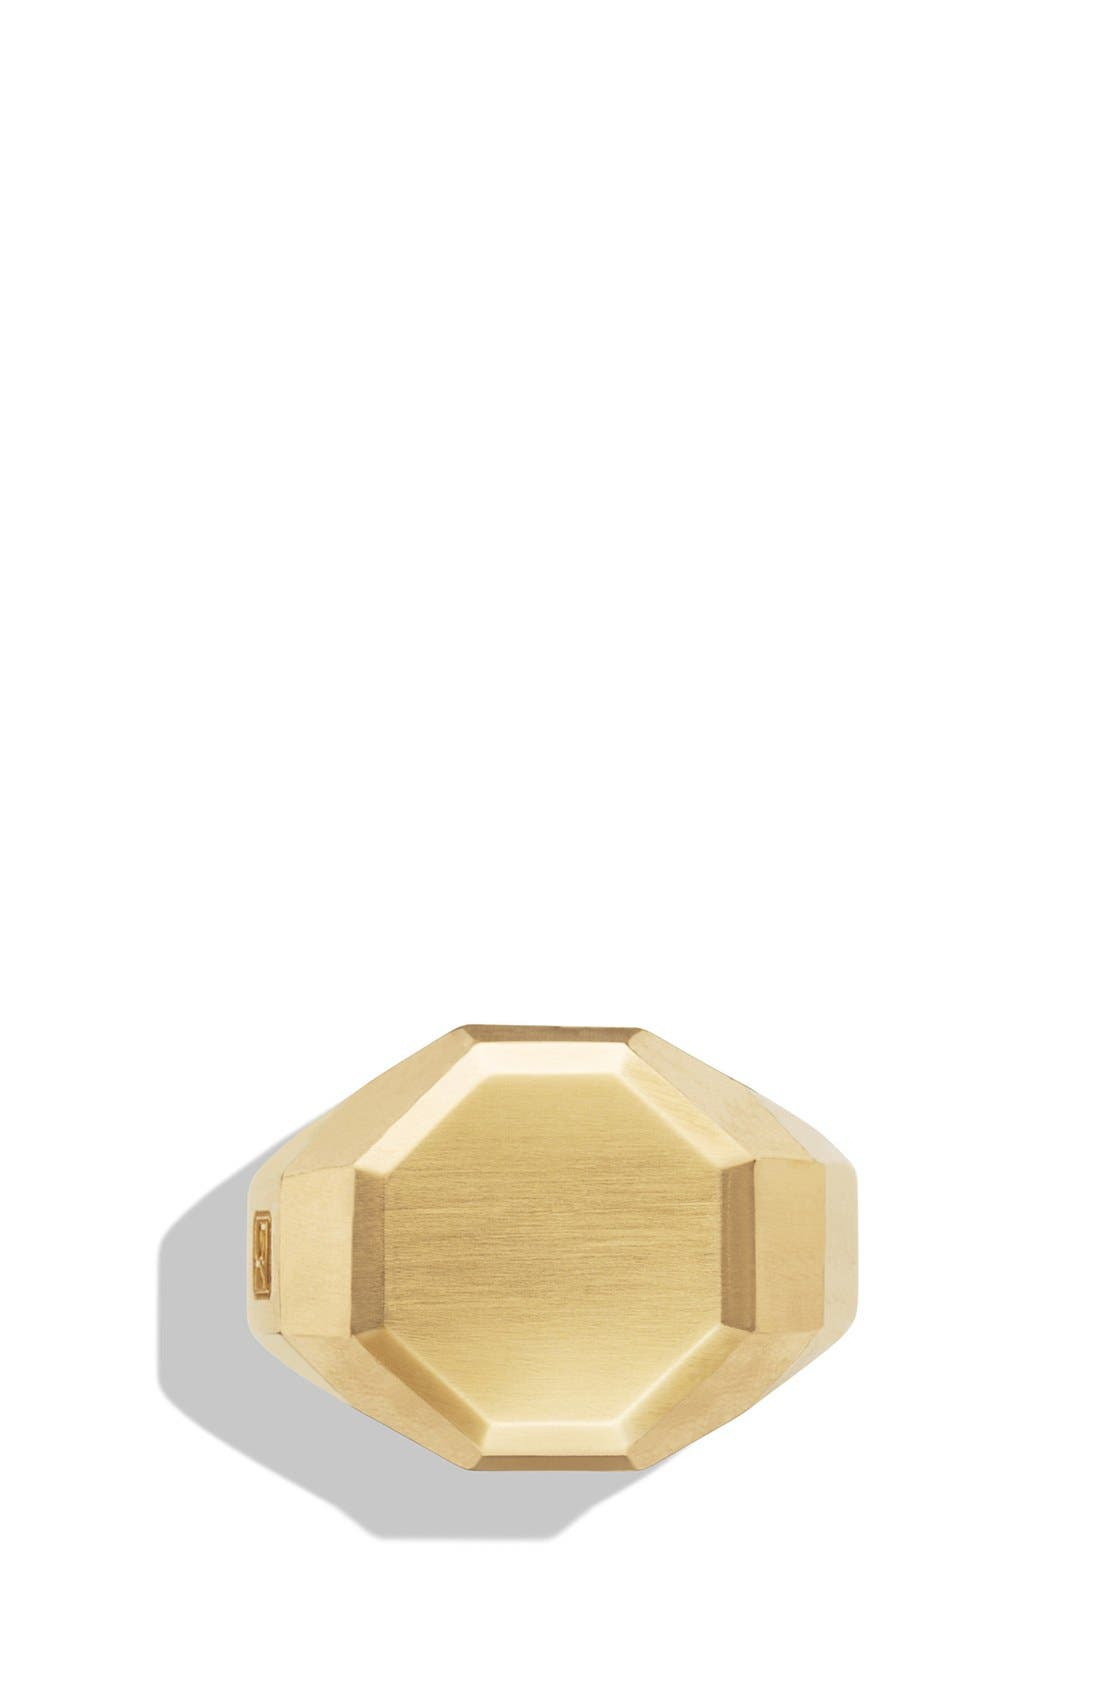 'Faceted' Signet Ring with 18k Gold,                             Alternate thumbnail 2, color,